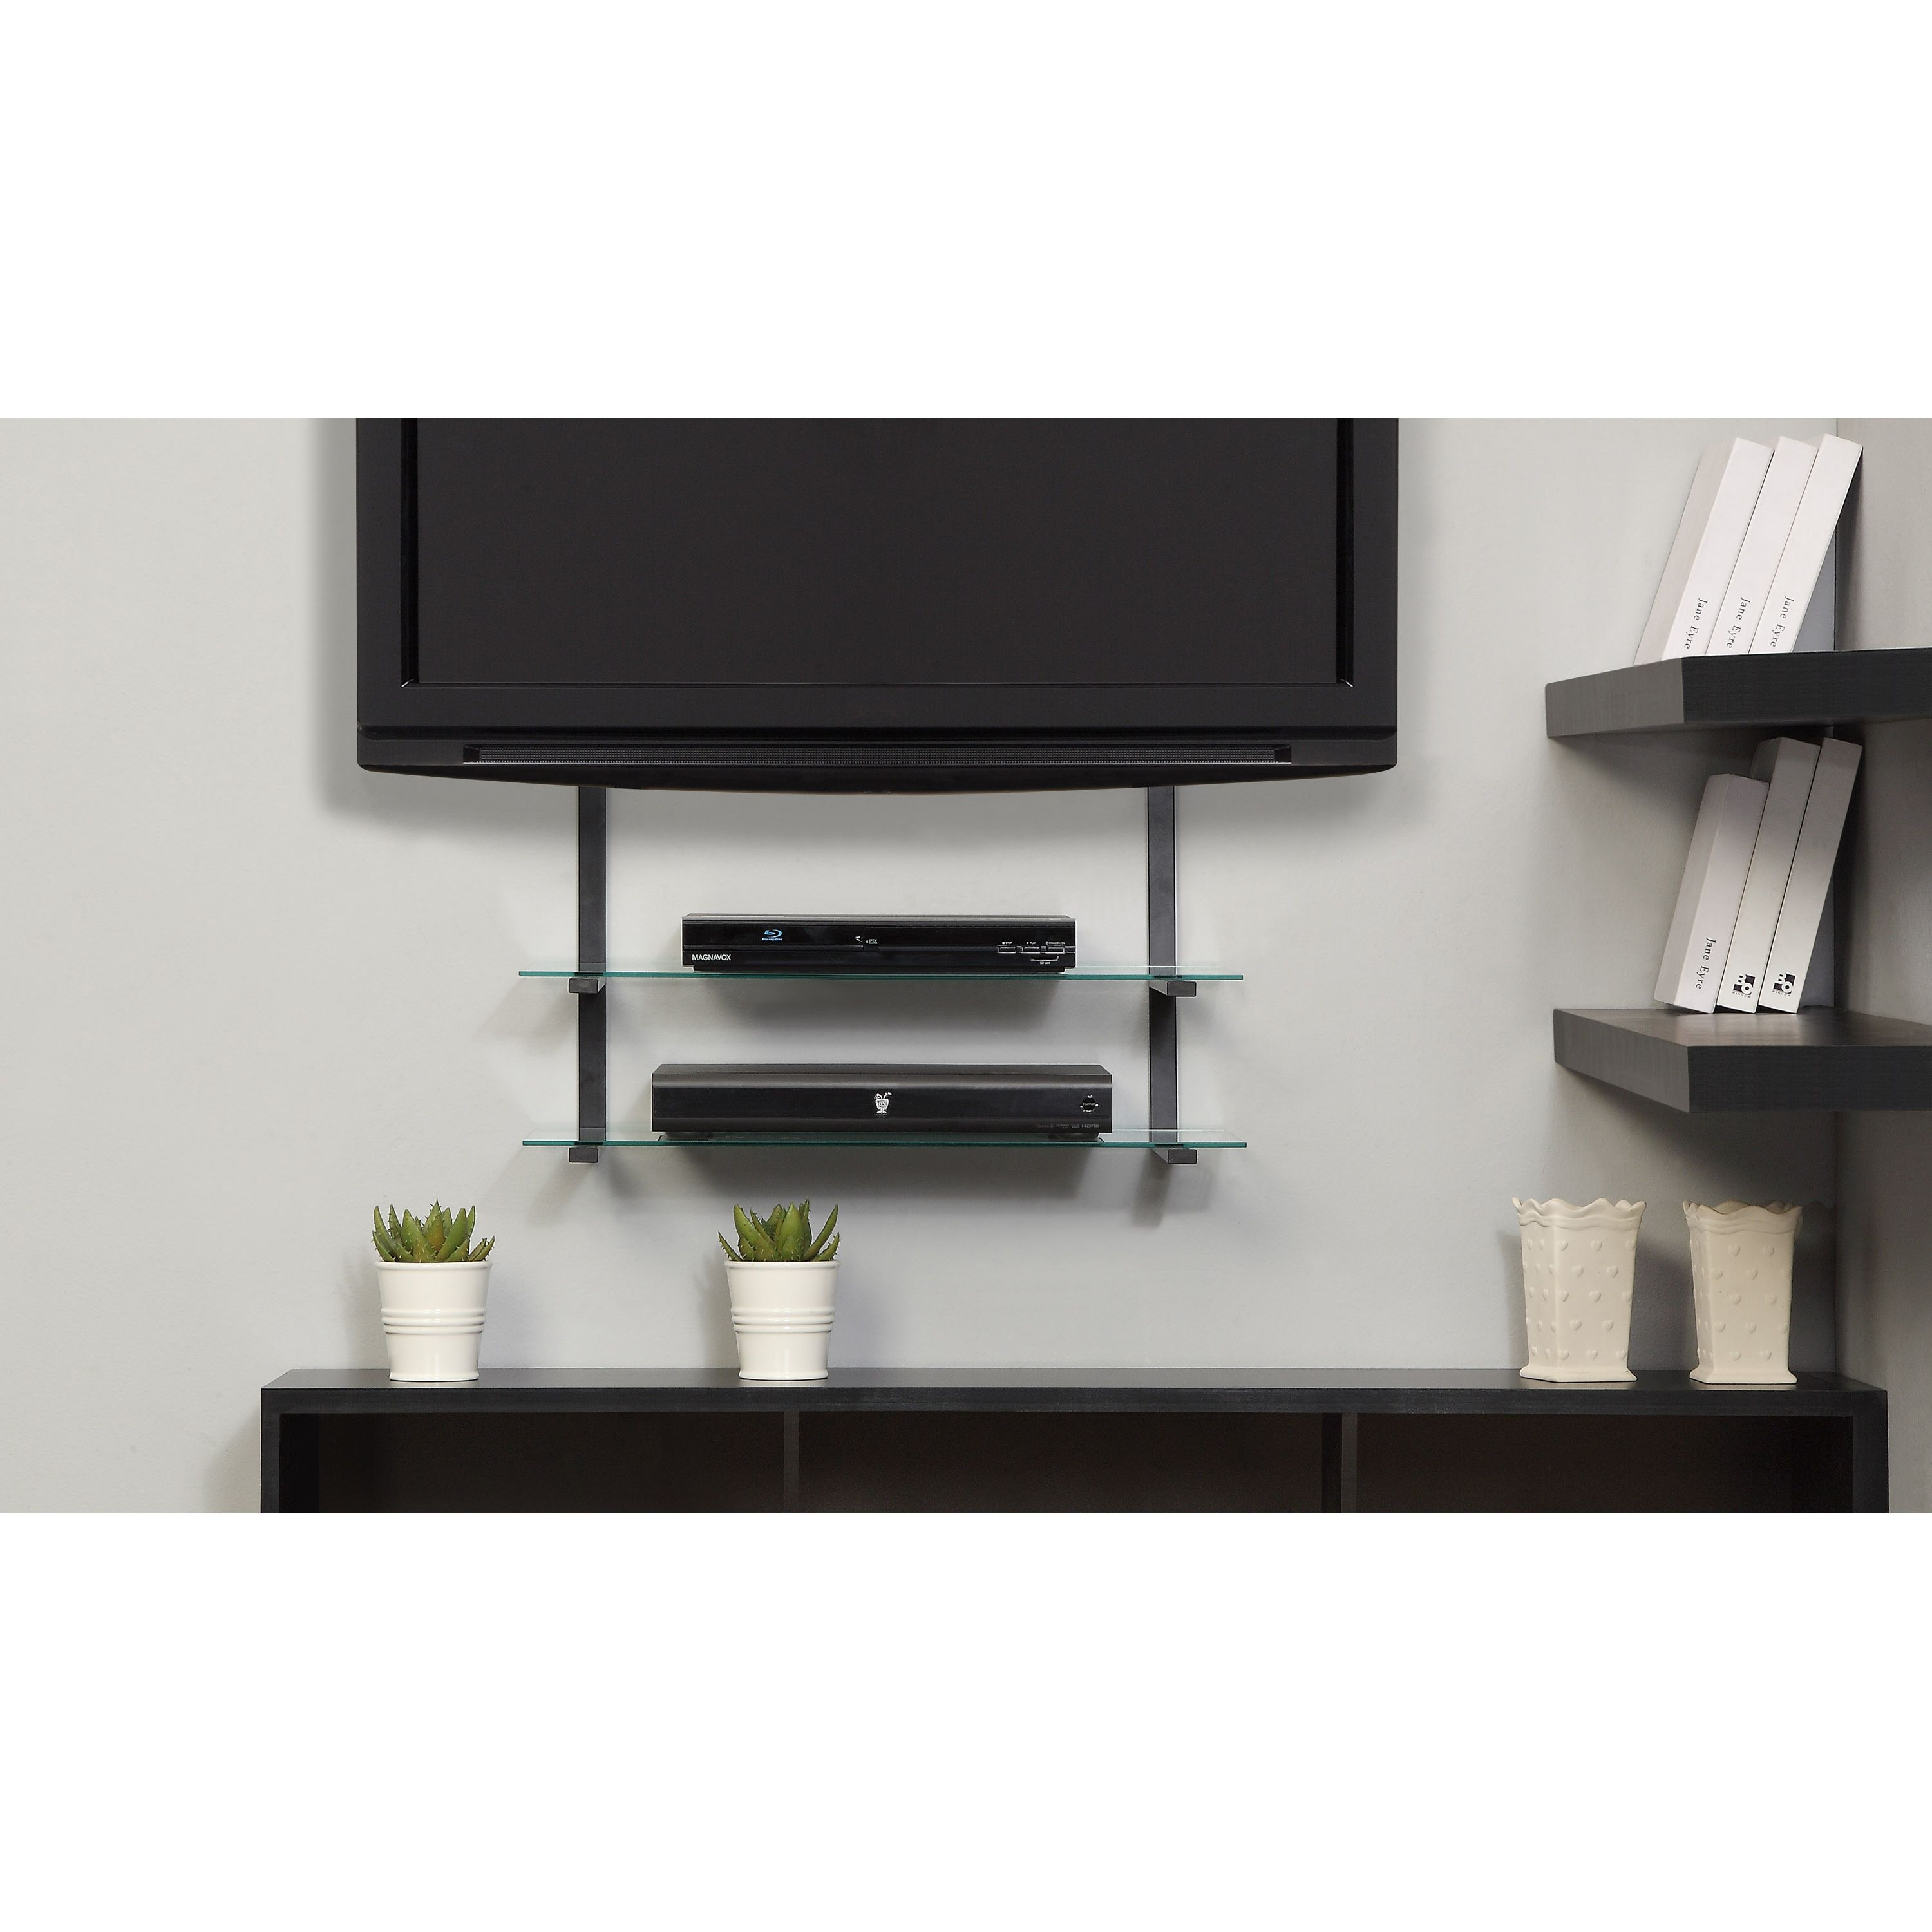 mount to your behind box shelf outside pin hide cable tv it how the wires and